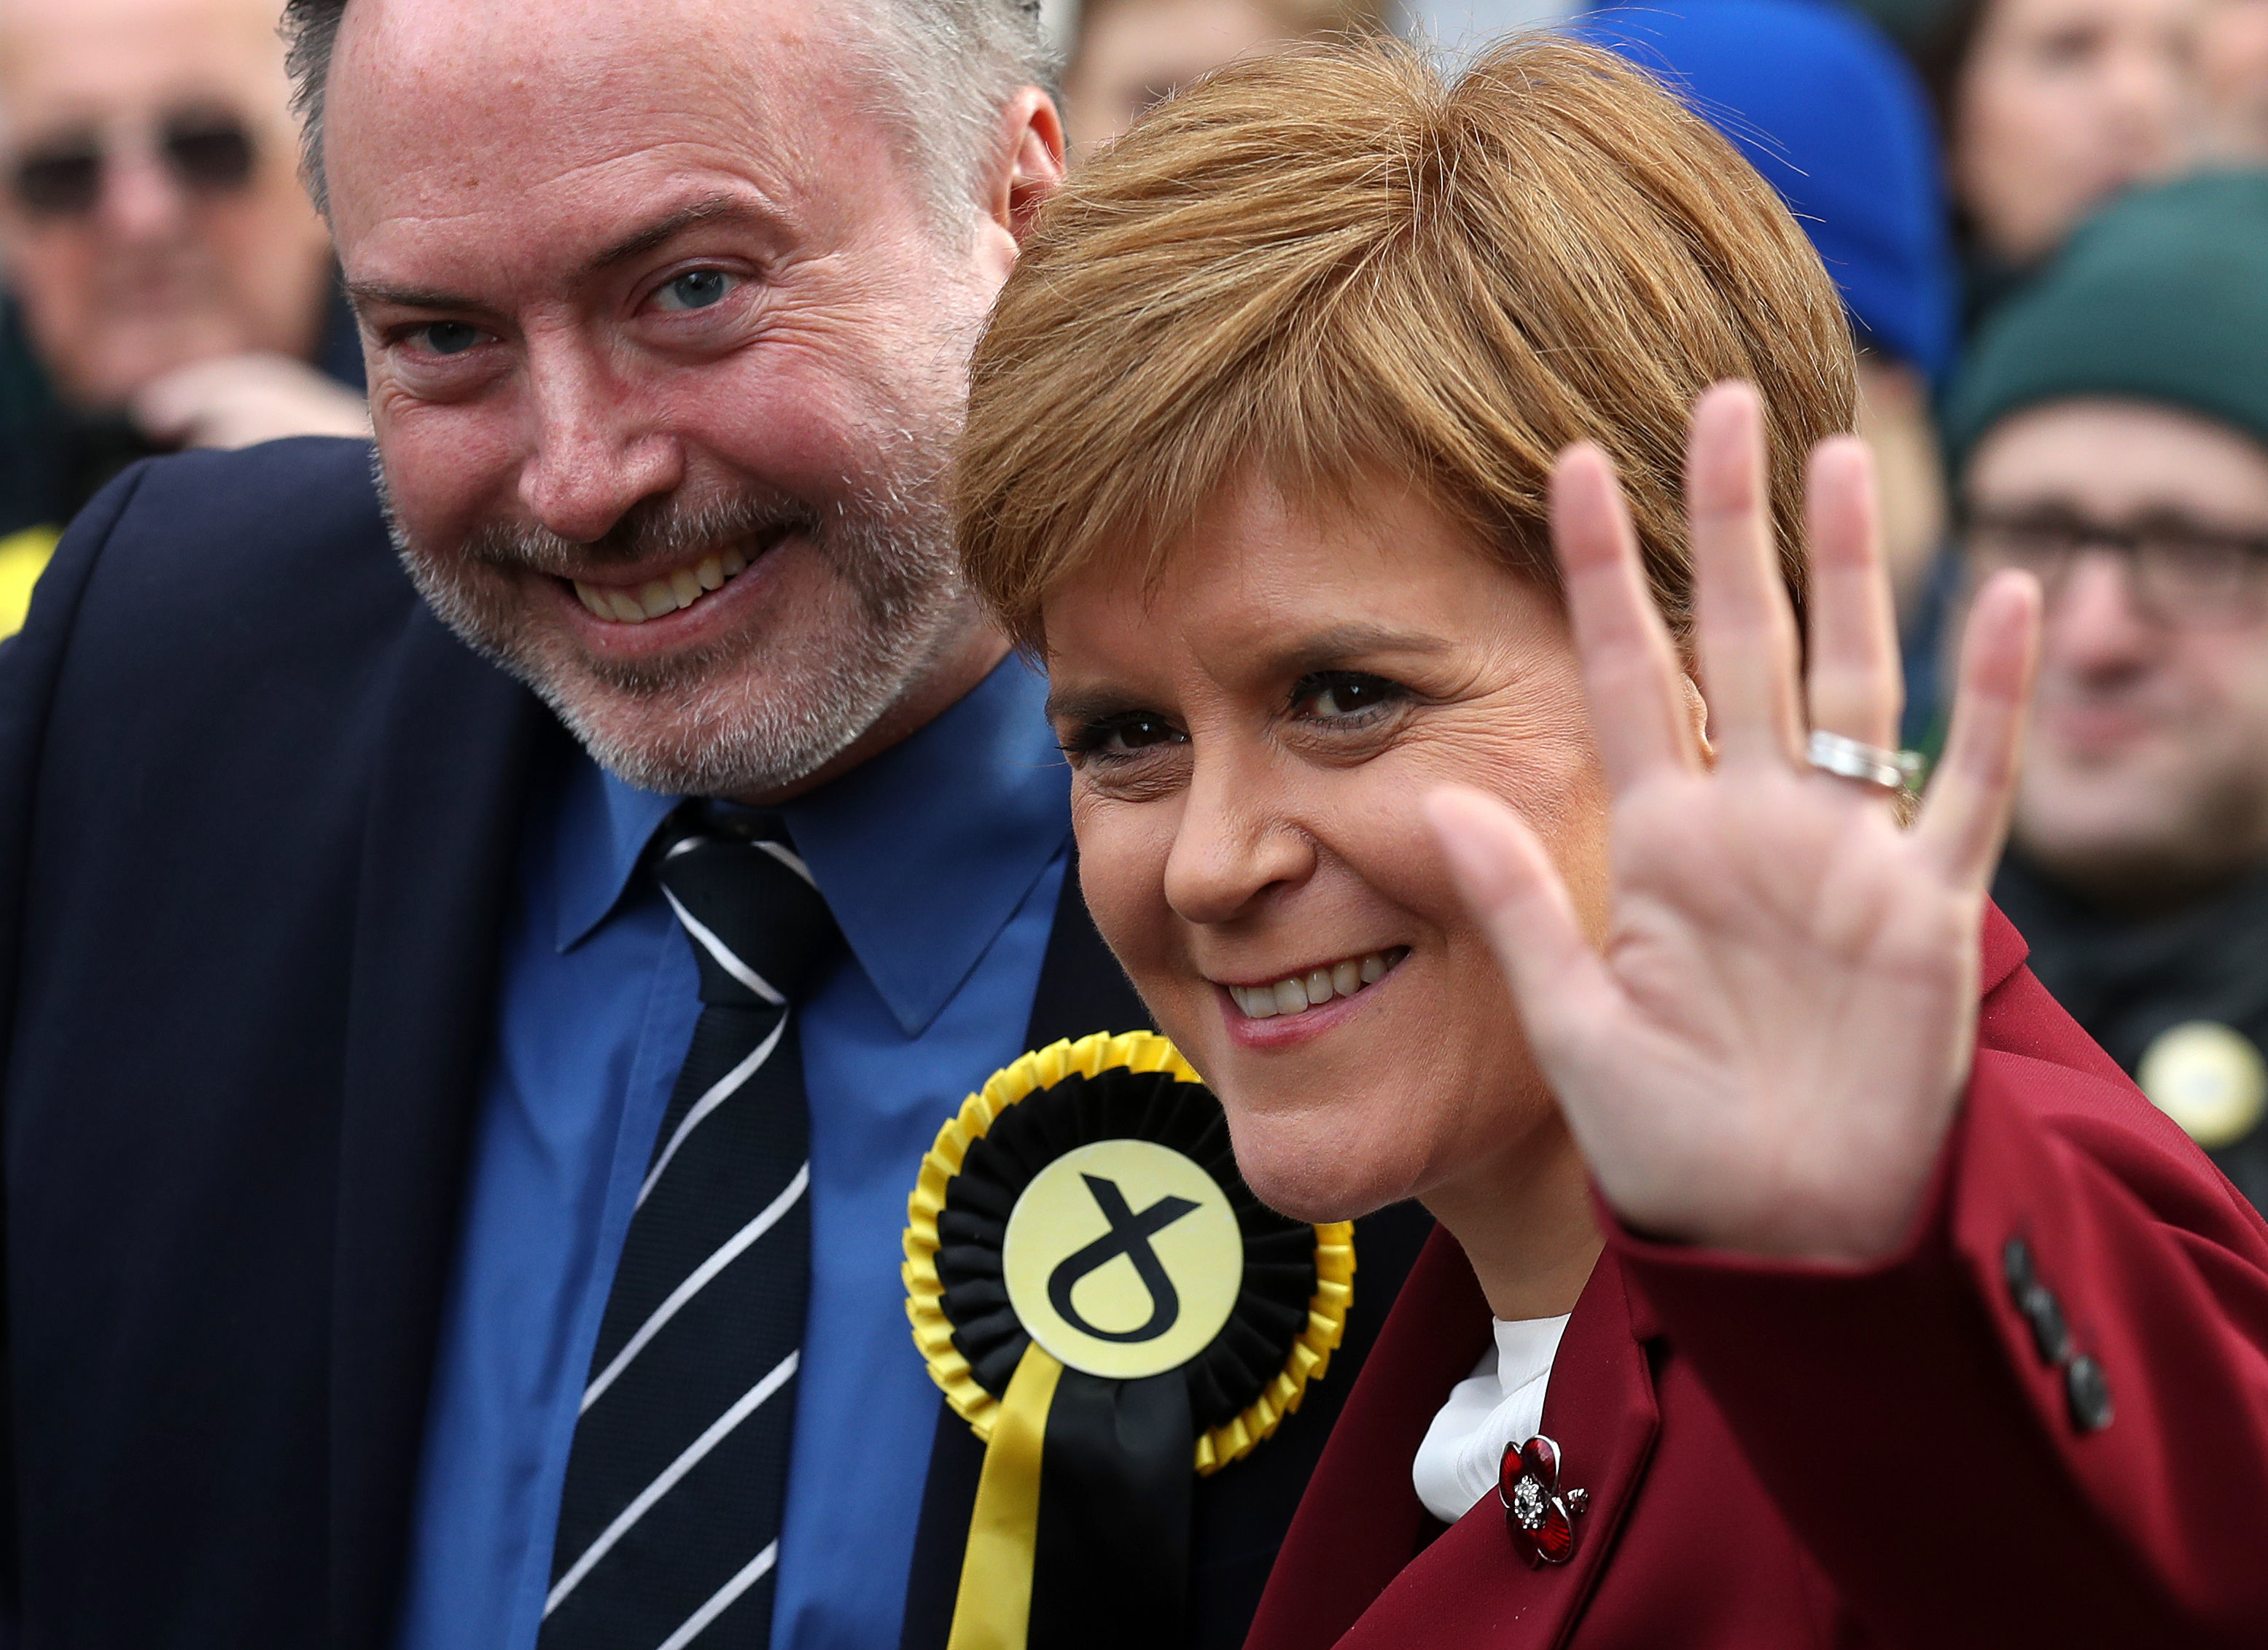 SNP leader Nicola Sturgeon joins Alyn Smith, the SNP's candidate for Stirling, on the general election campaign trail